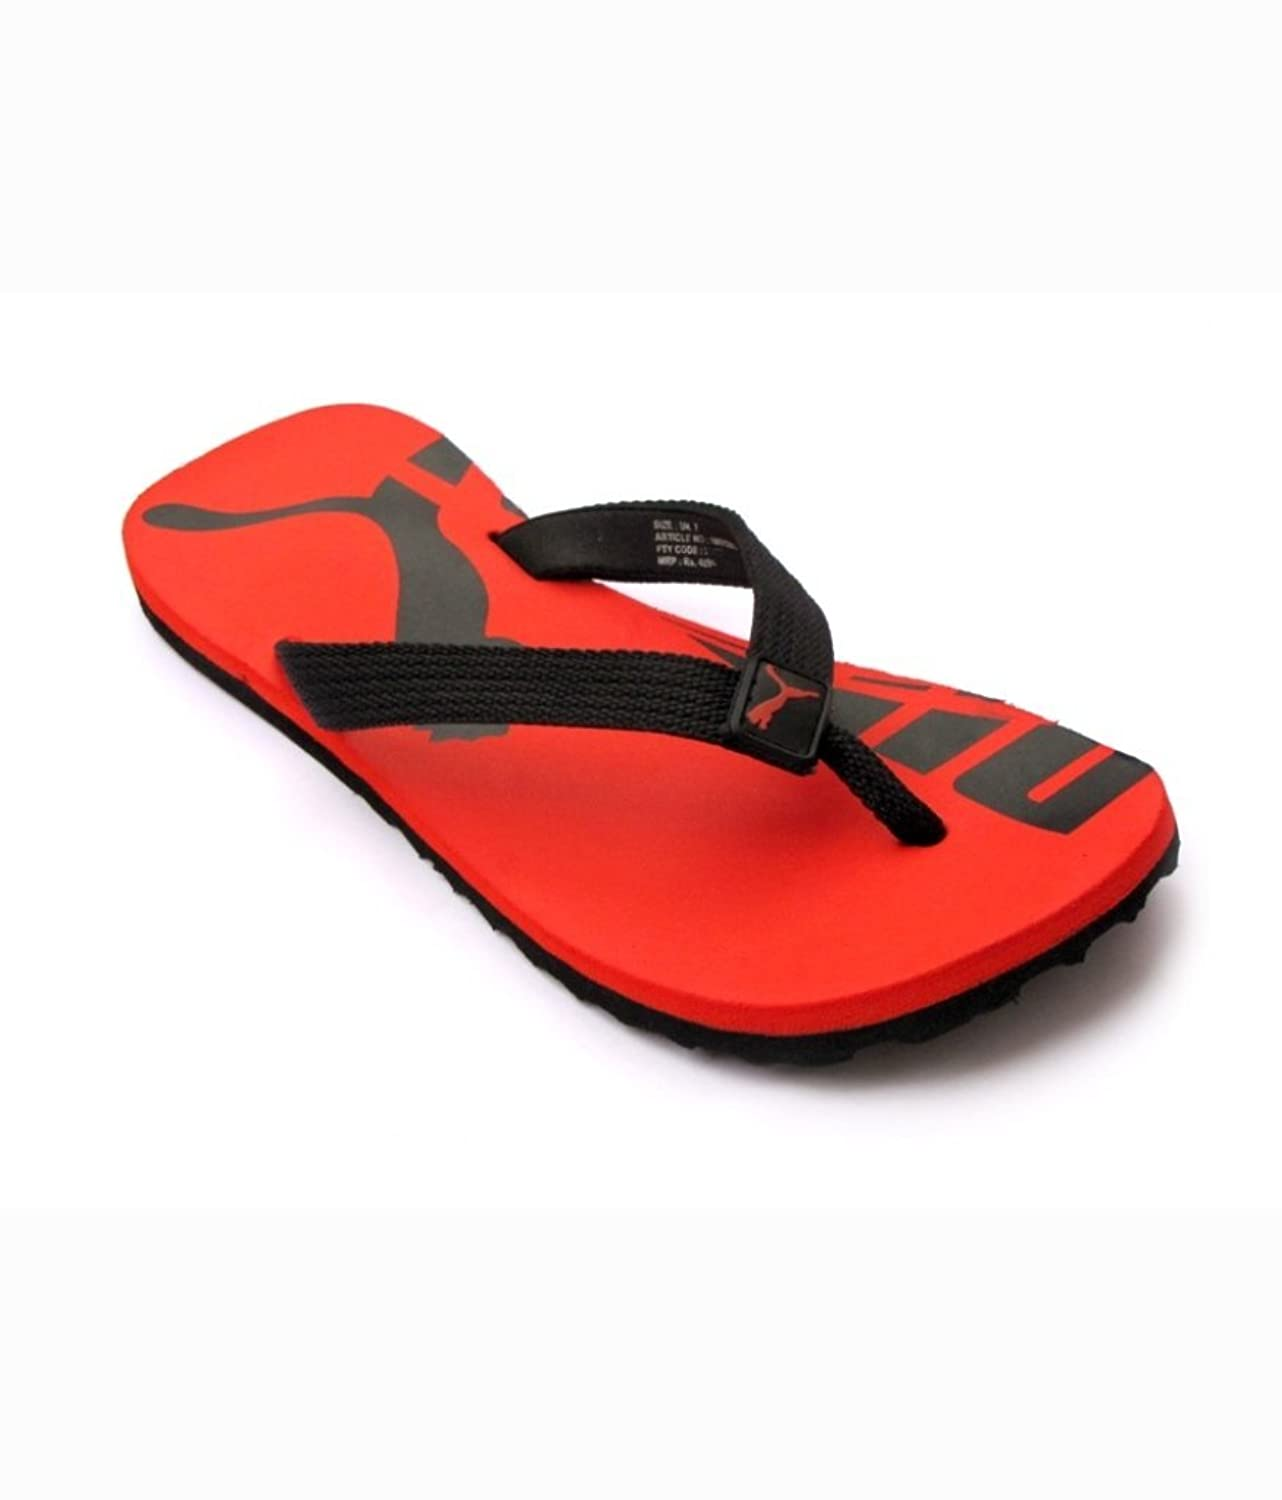 Puma Men's Red Synthetic Flip Flops (SC005_10UK): Buy Online at Low Prices  in India - Amazon.in